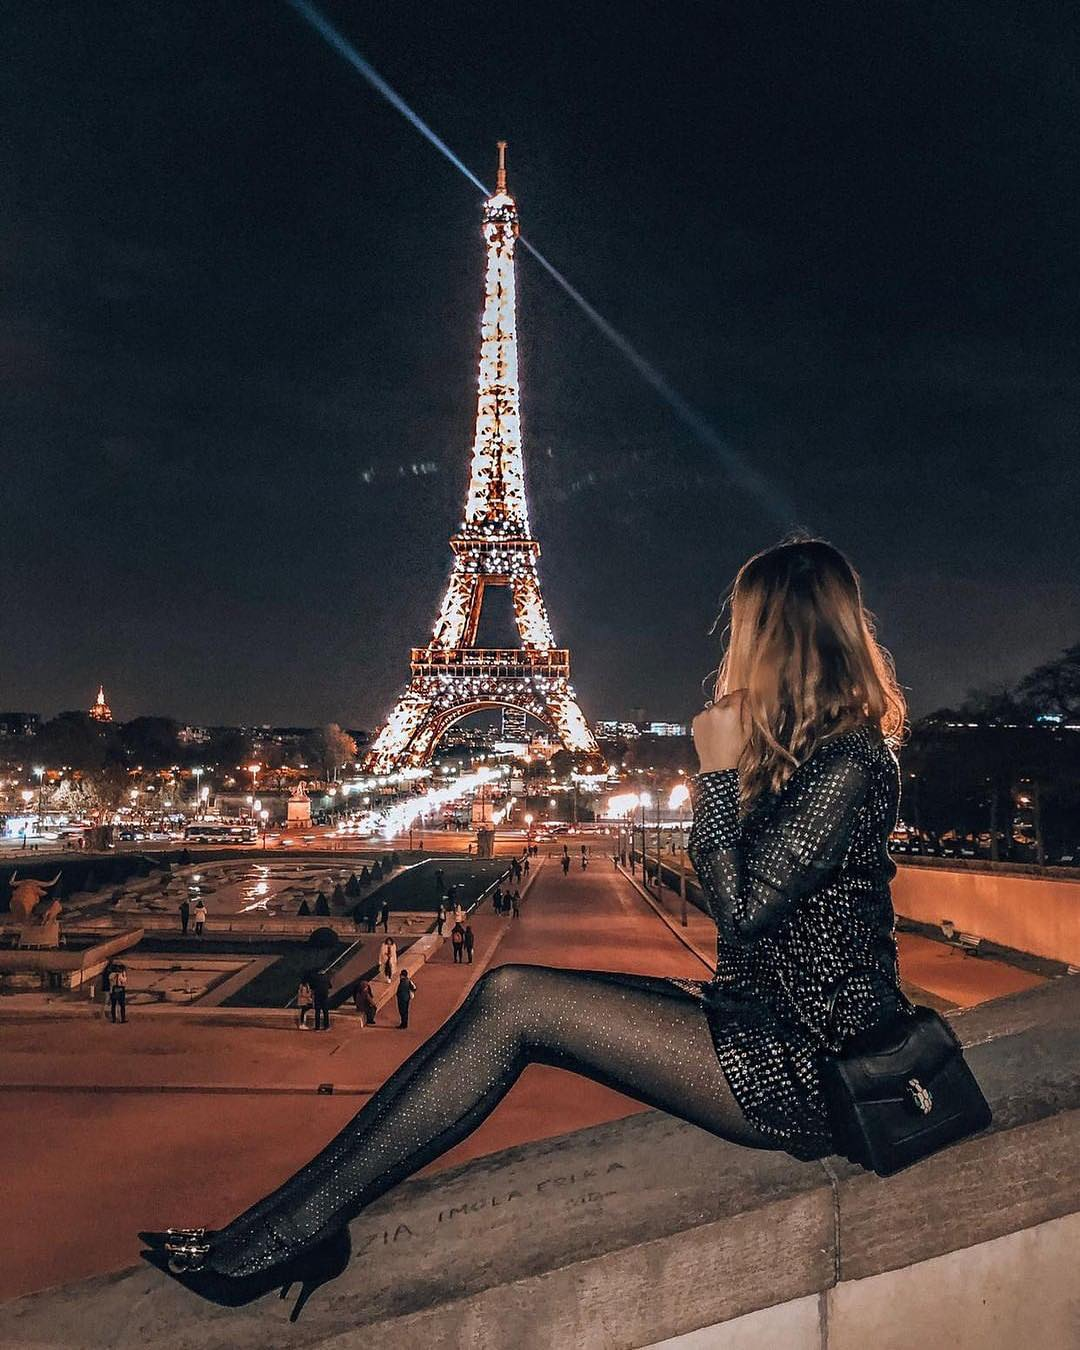 Sequin blazer dress and shiny tights: best Parisian outfit for summer 2021